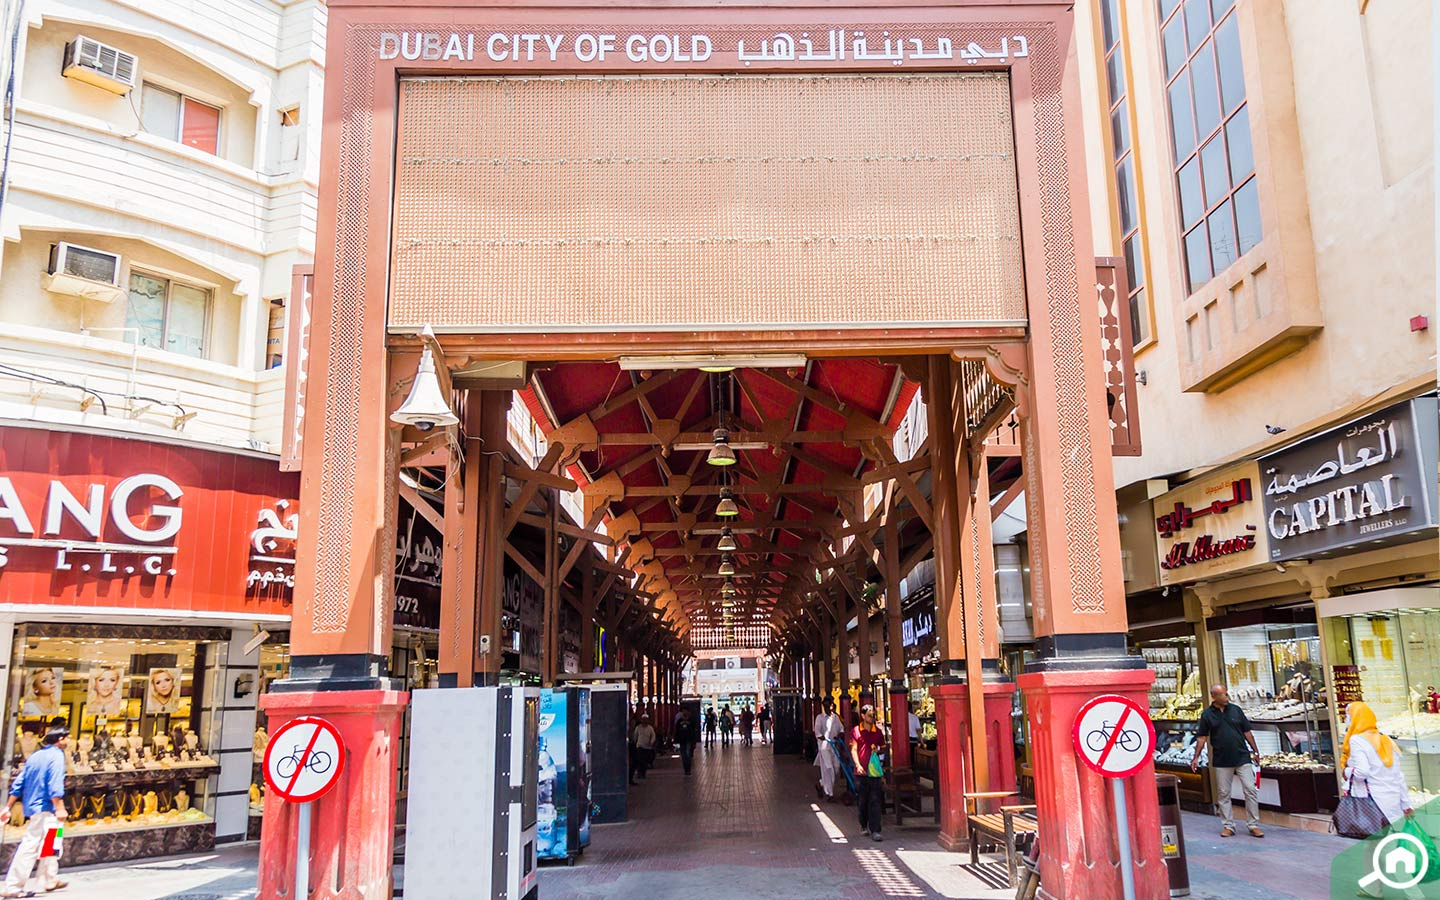 Entrance of Deira Gold Souk in Dubai